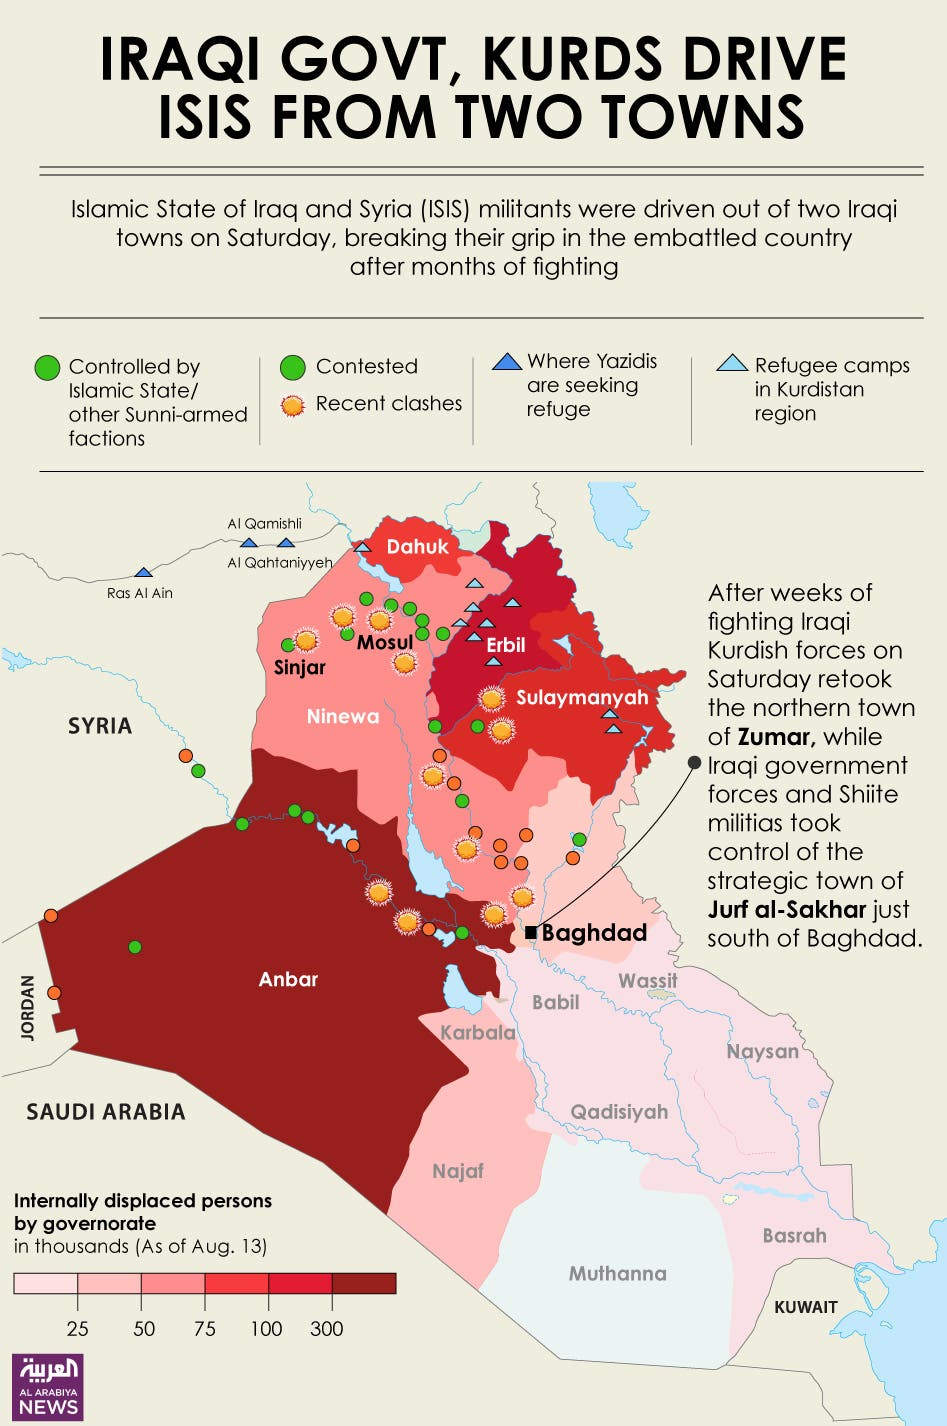 Infographic: Iraqi govt, Kurds drive ISIS from two towns